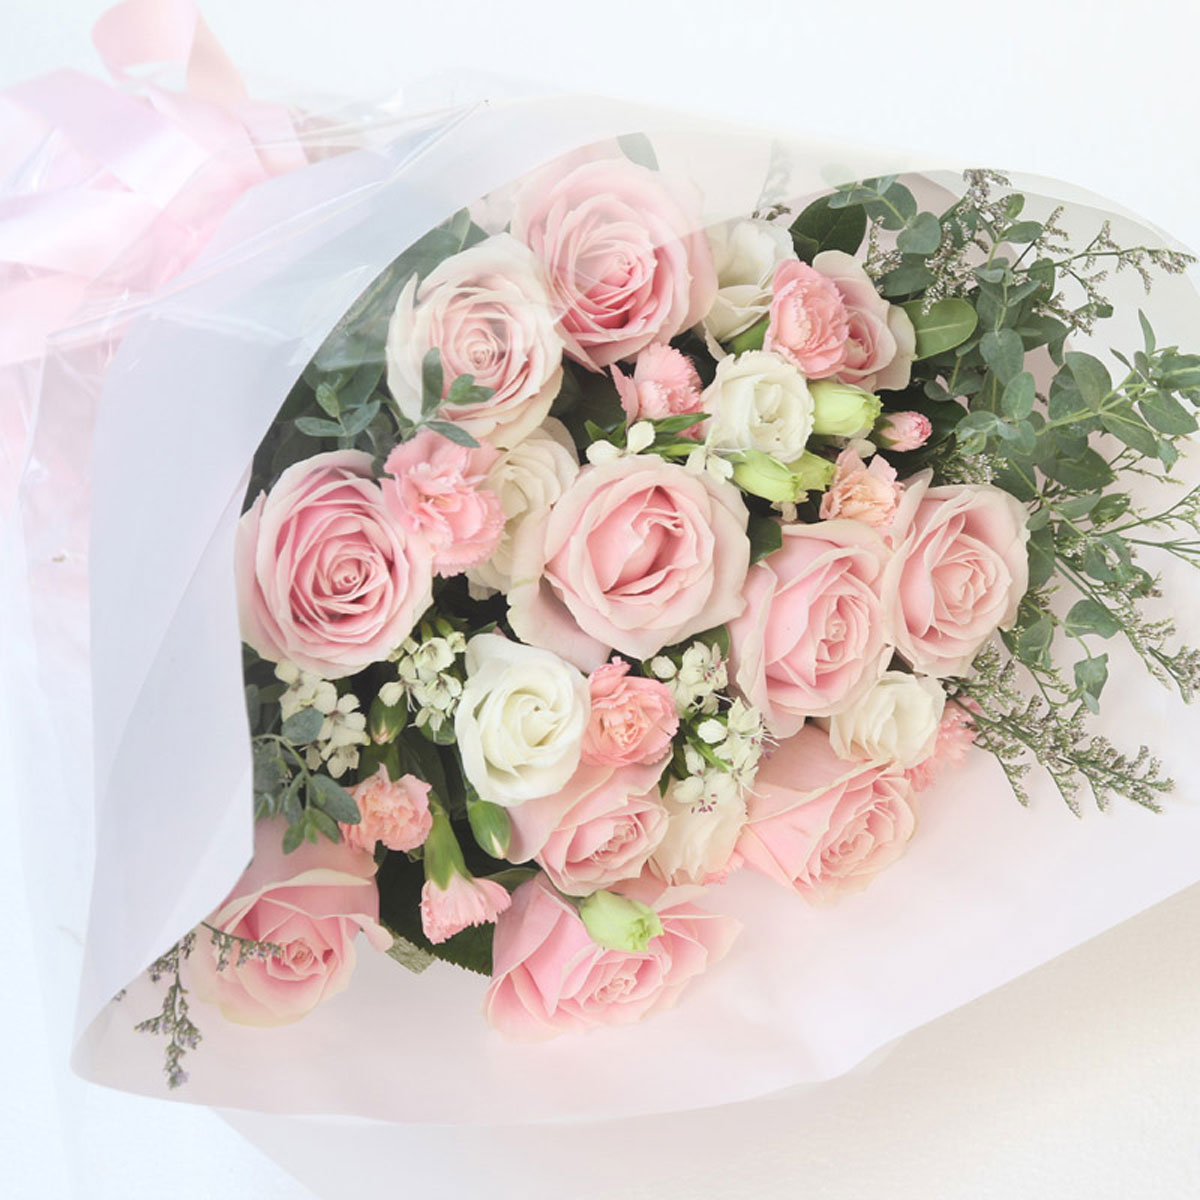 Medium bouquet of pink roses, carnations, eustomas and greenery wrapped in quality matte paper